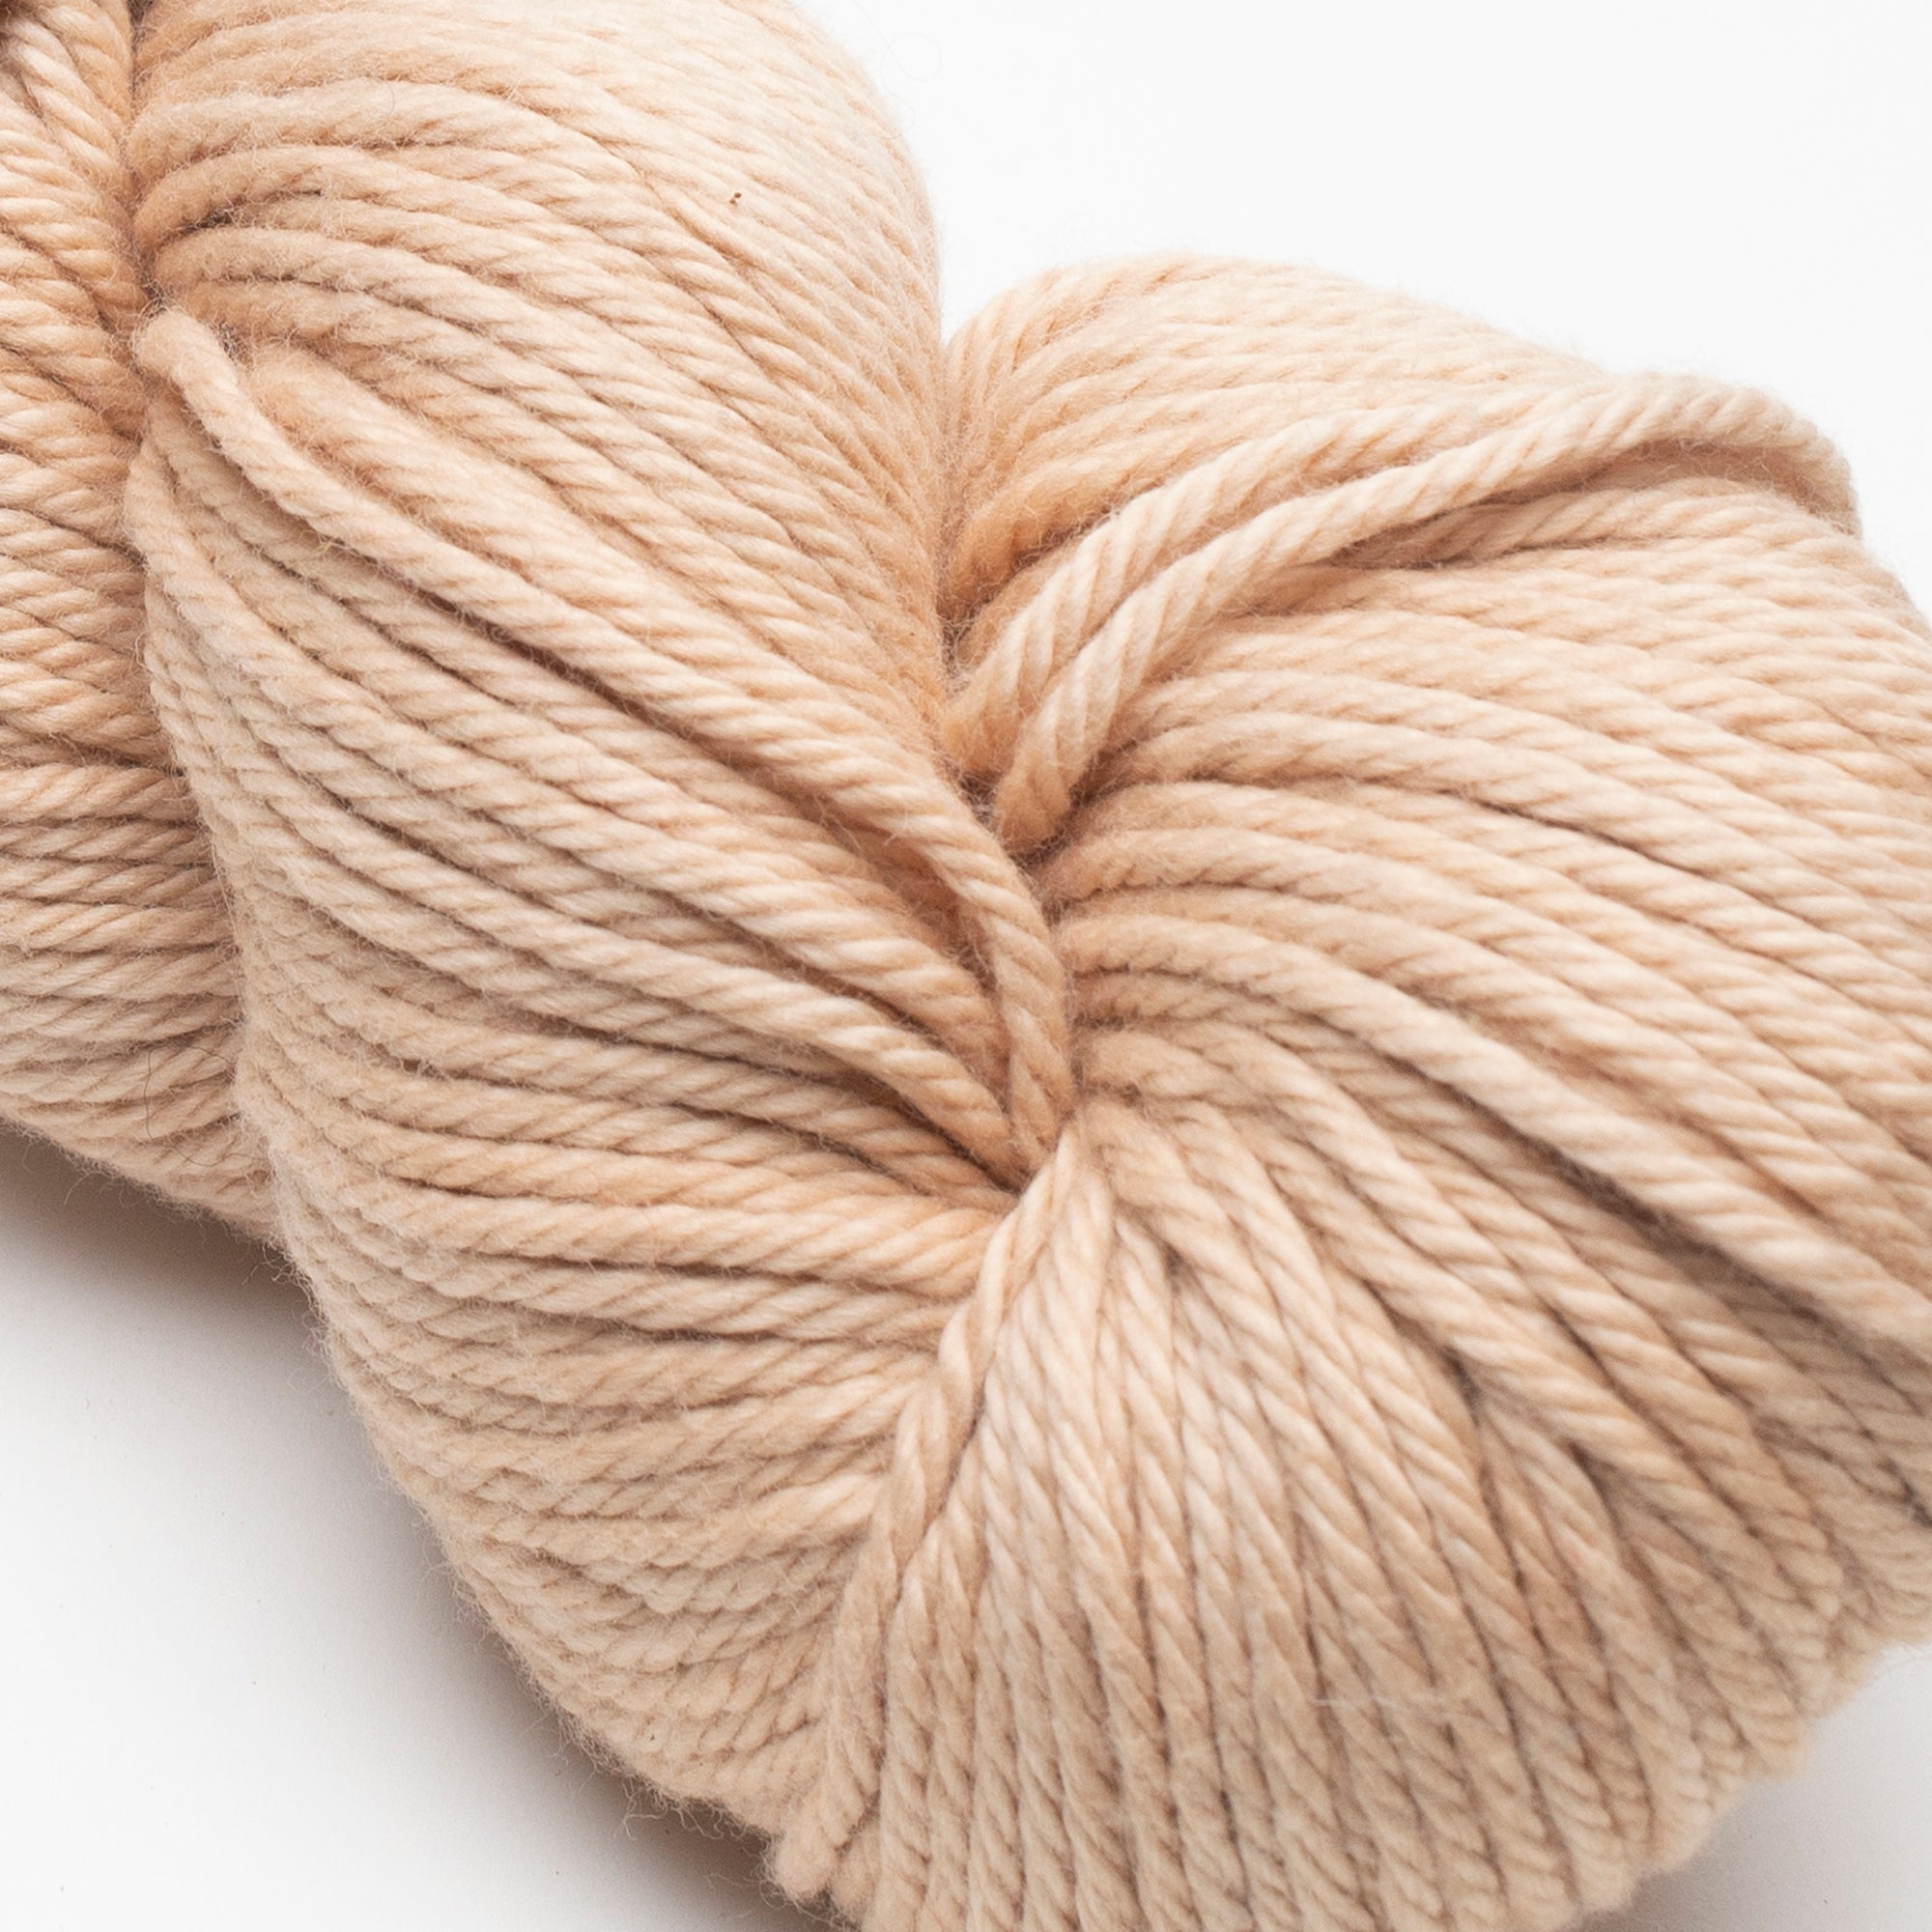 Yarn - Naturally Dyed 100% Cotton